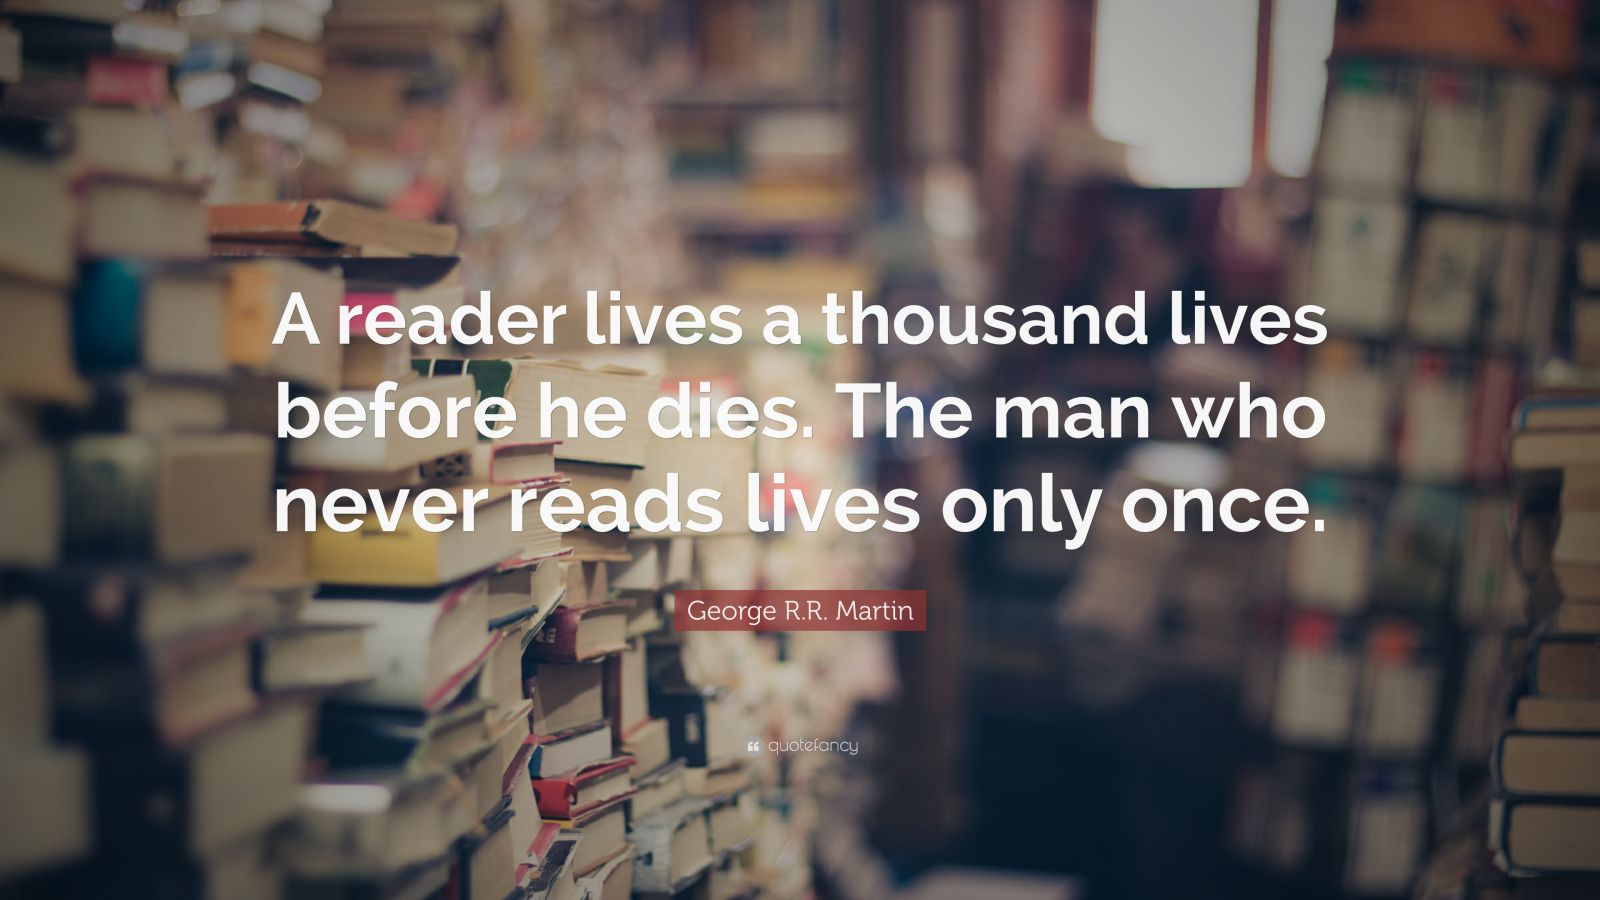 Roald Dahl Quotes Wallpaper George R R Martin Quote A Reader Lives A Thousand Lives